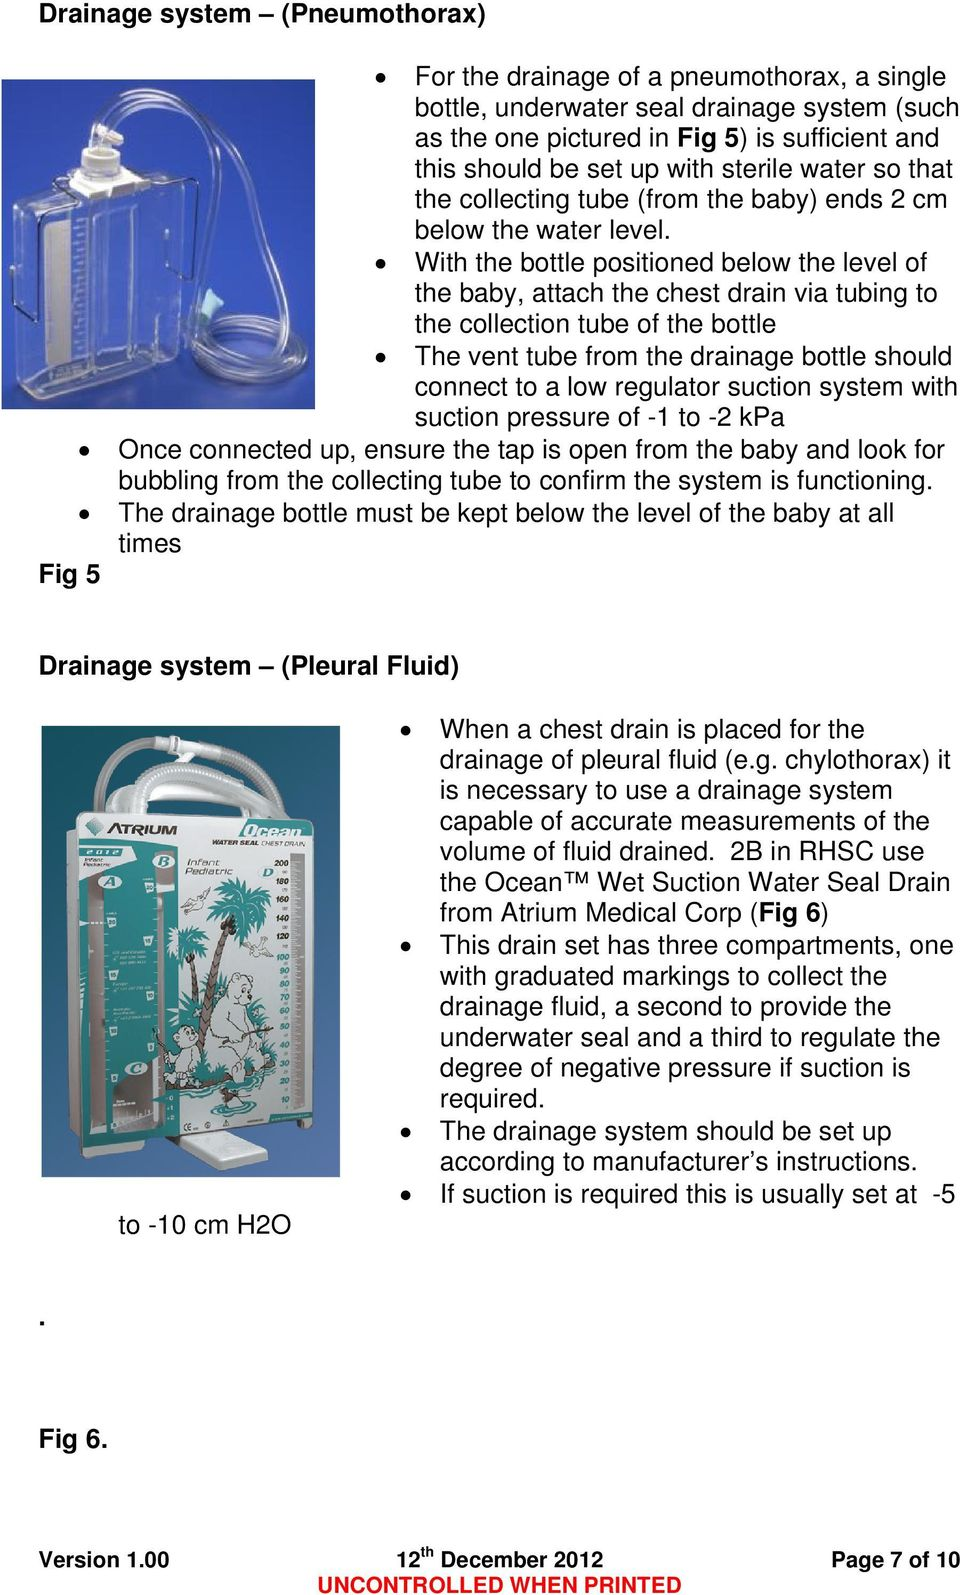 With the bottle positioned below the level of the baby, attach the chest drain via tubing to the collection tube of the bottle The vent tube from the drainage bottle should connect to a low regulator